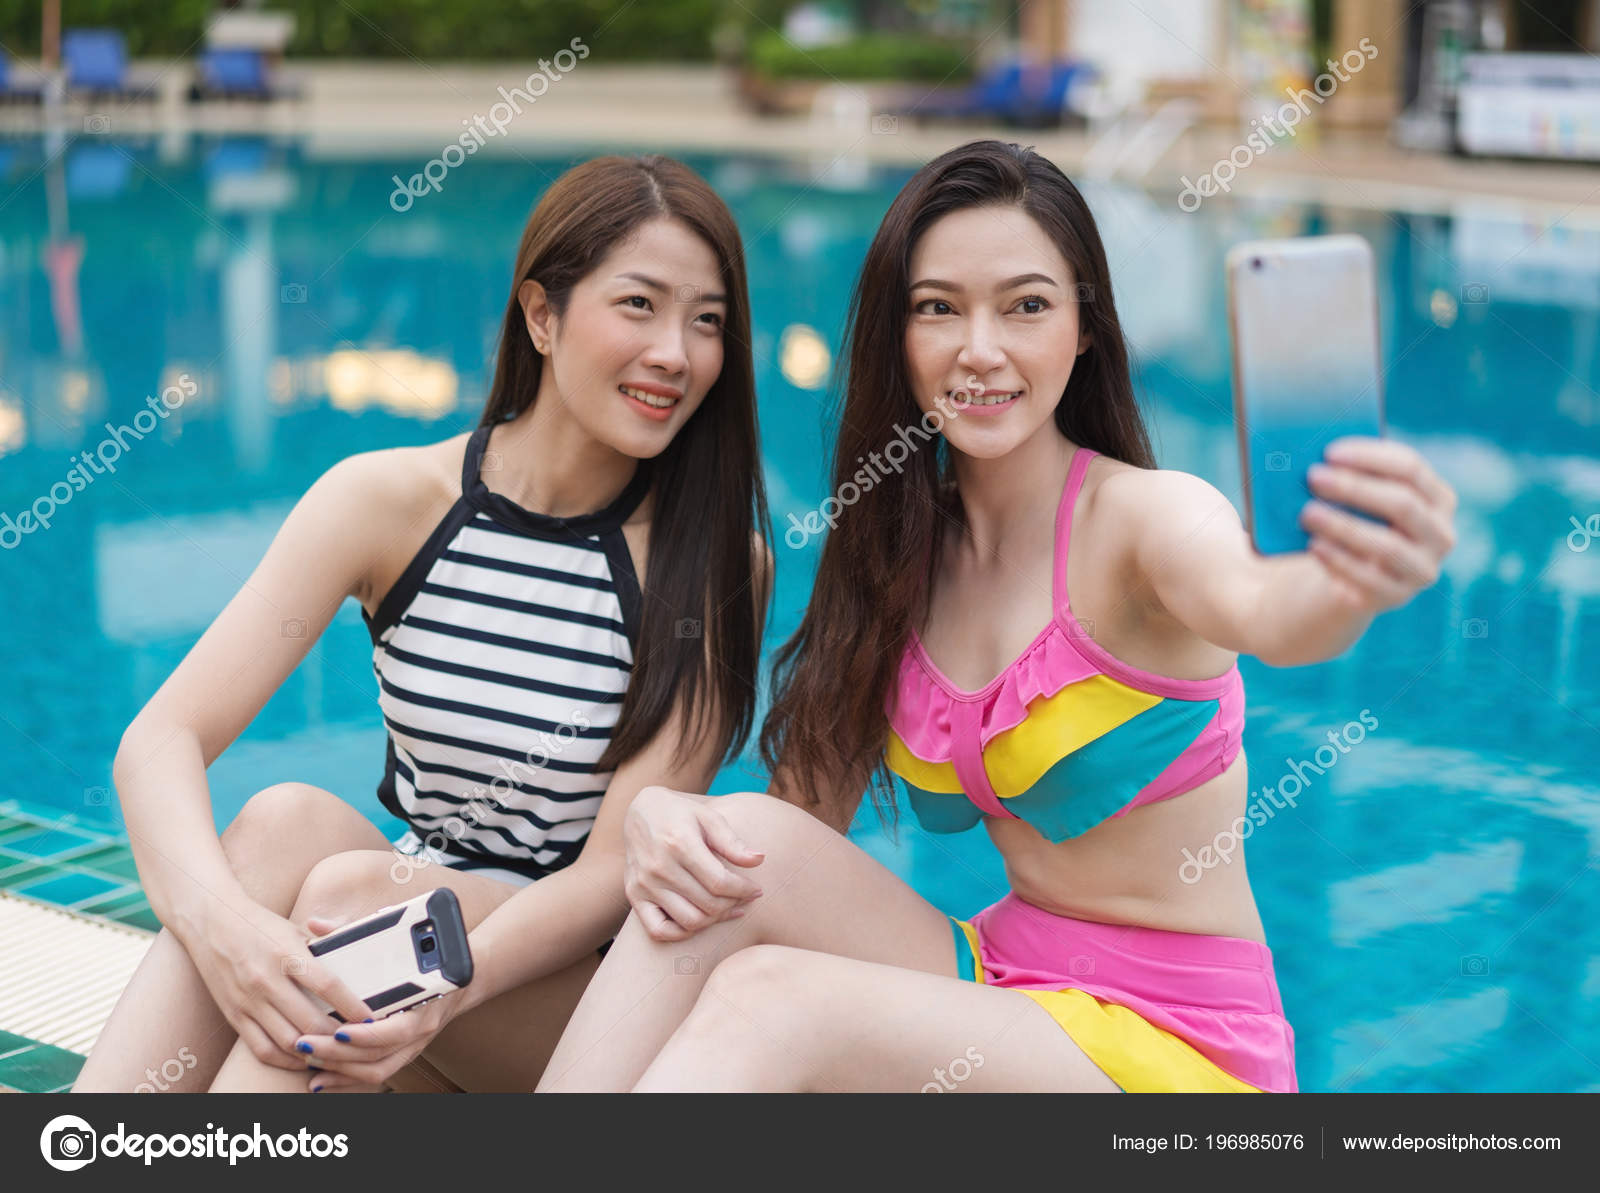 9157f232f2 Woman Swimsuit Making Selfie Photo Smartphone Swimming Pool — Stock Photo